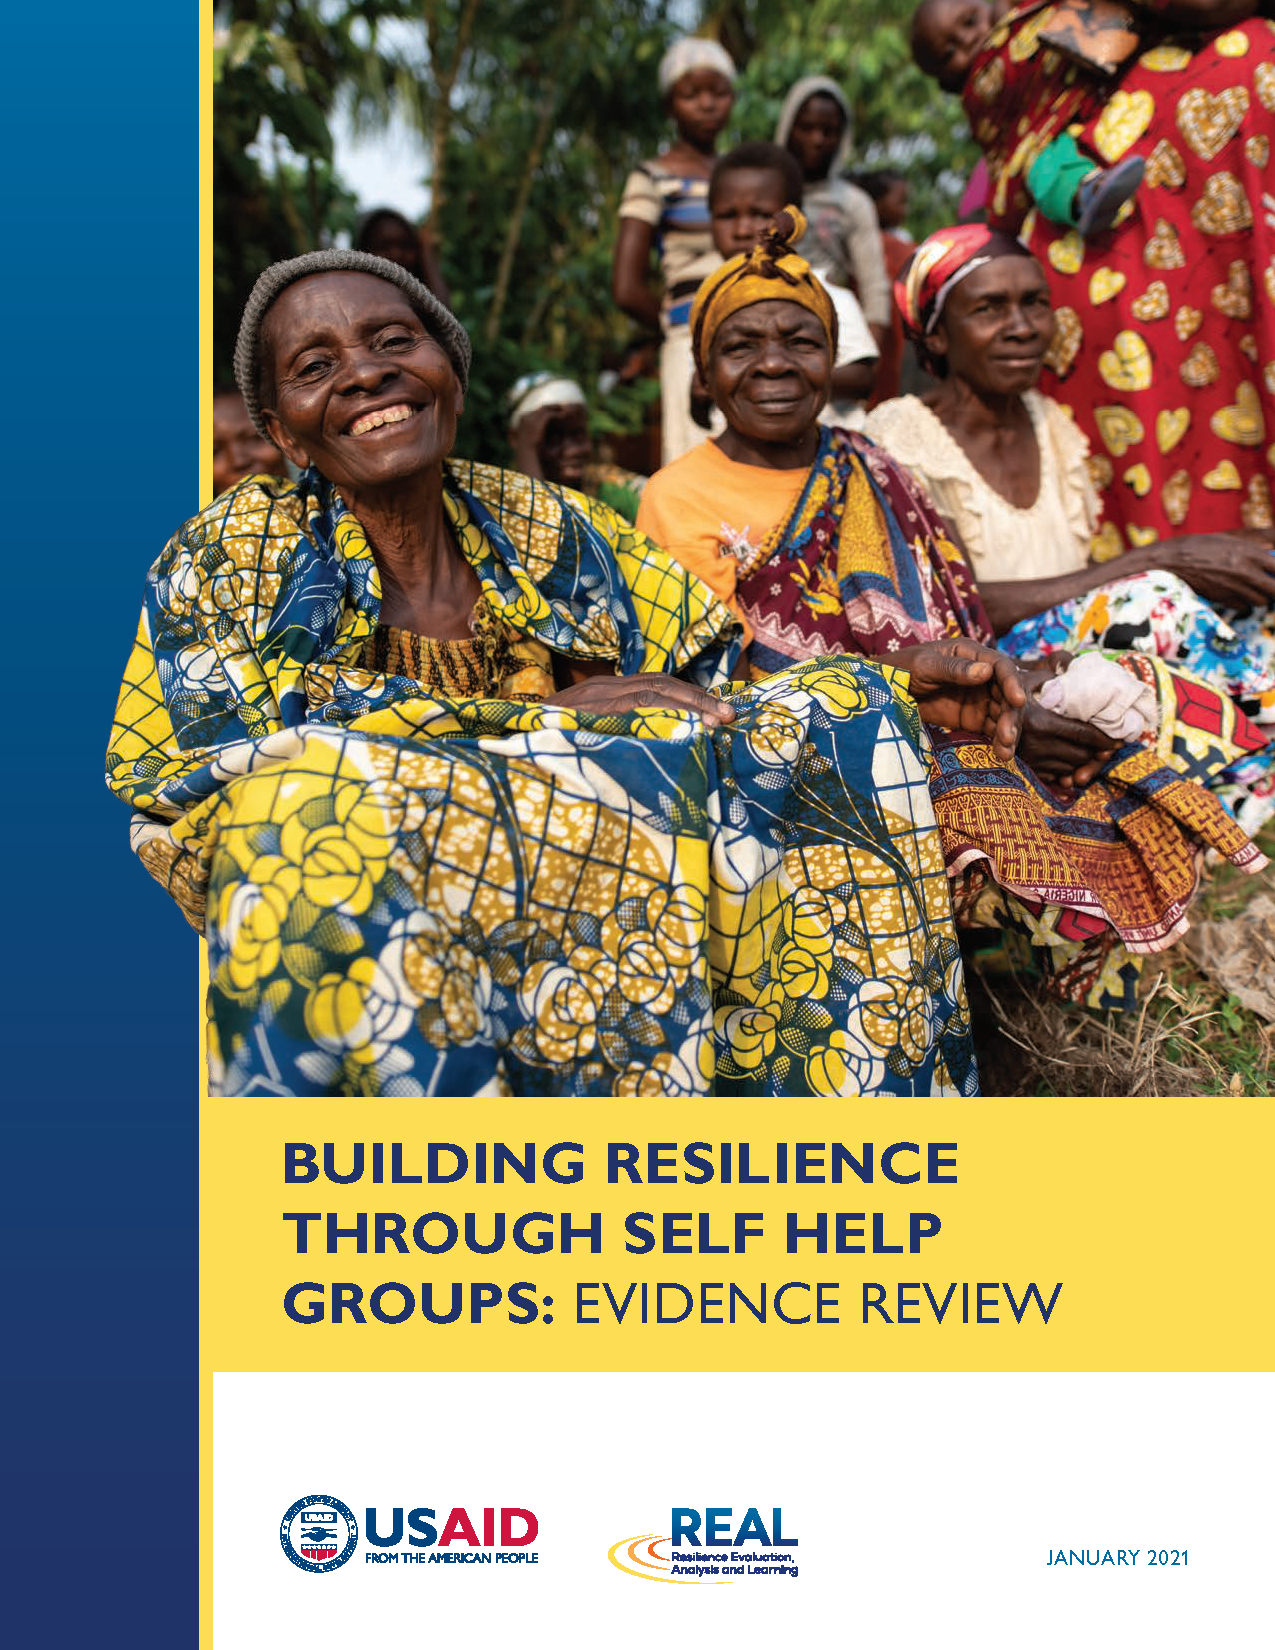 BUILDING RESILIENCE THROUGH SELF HELP GROUPS: EVIDENCE REVIEW